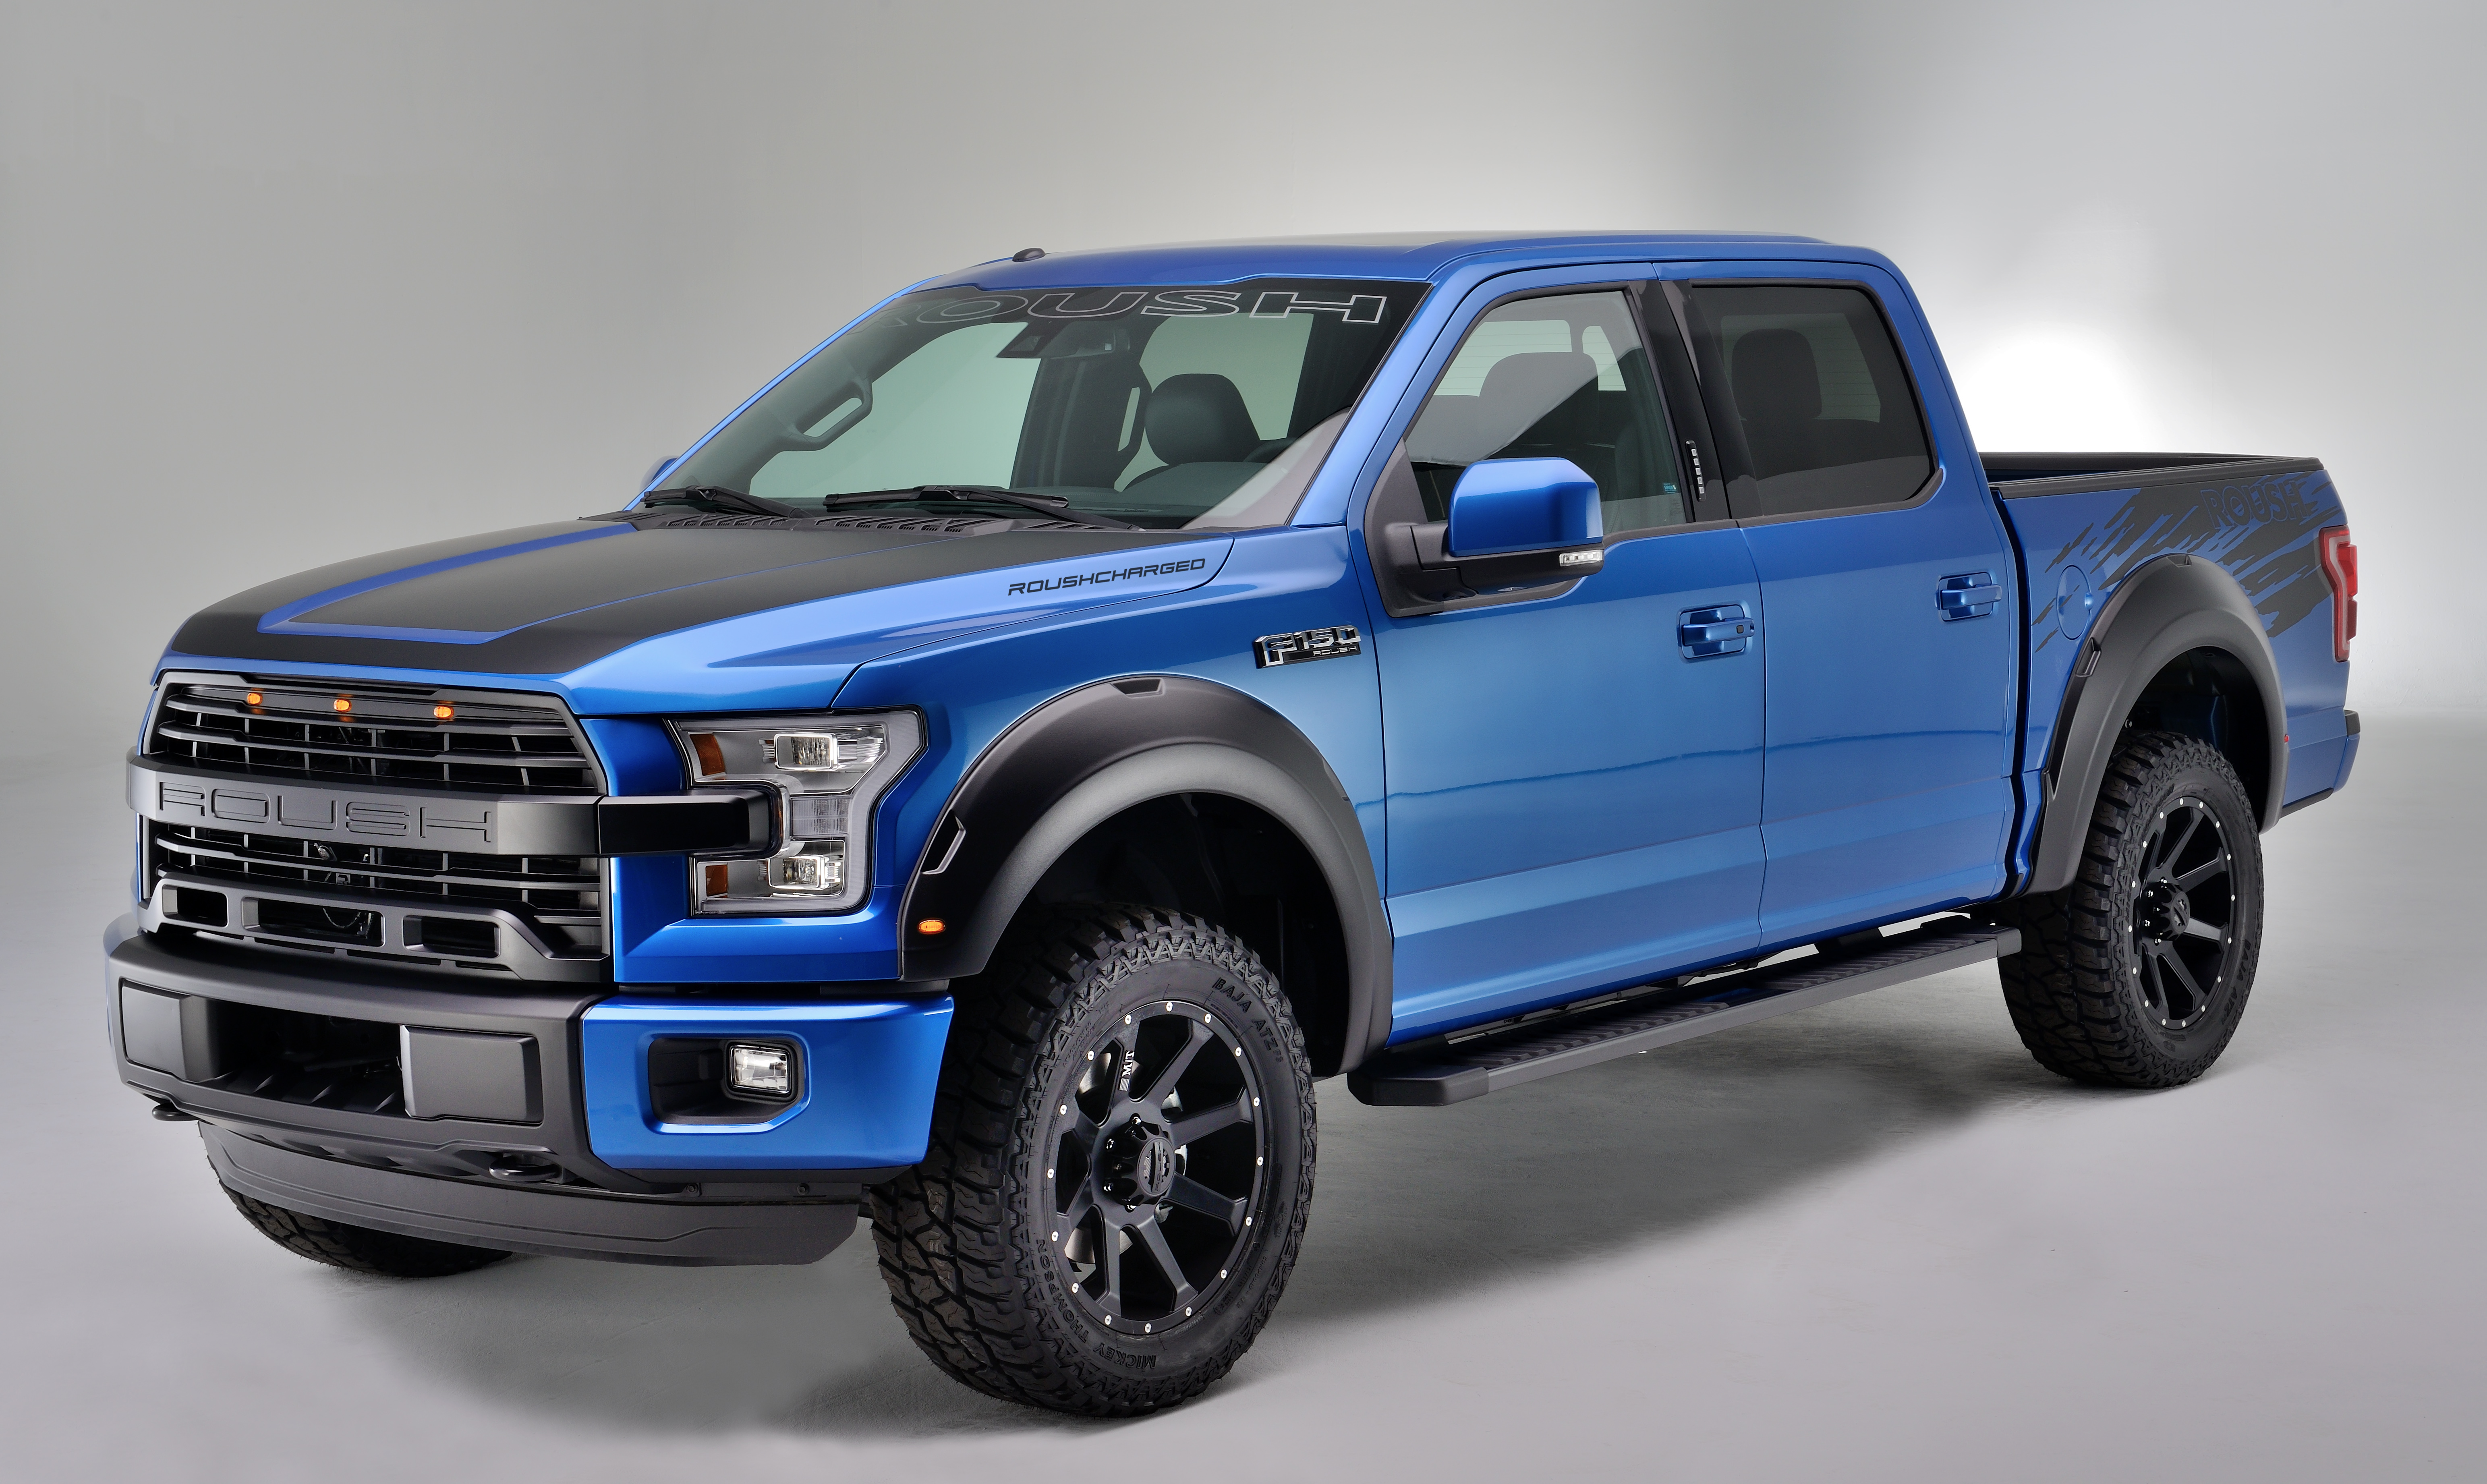 New 2016 ROUSH F-150 With Supercharger Creates Next ...